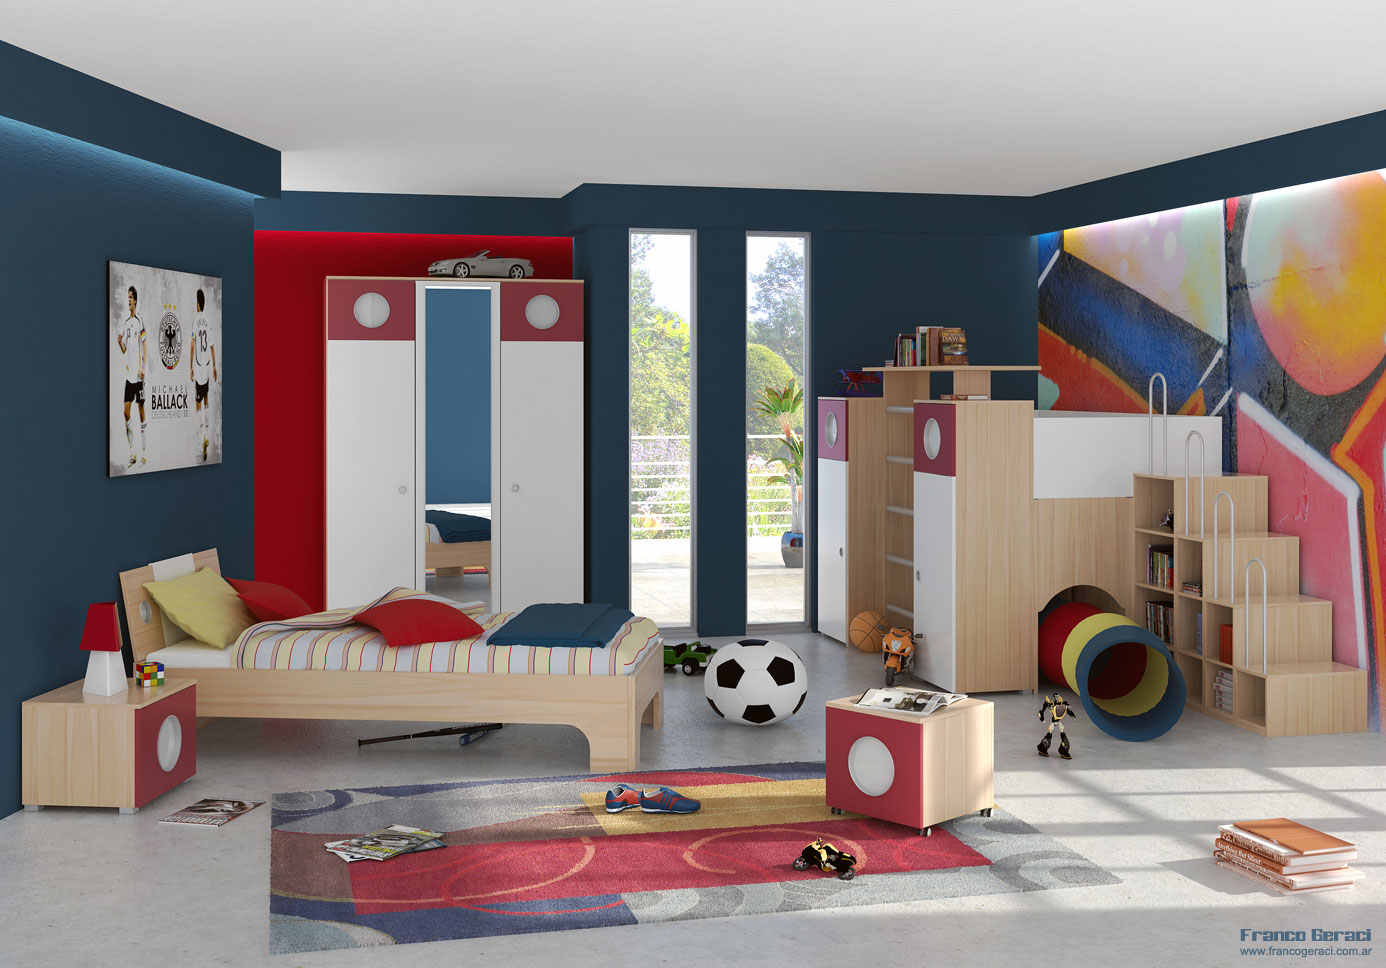 A spacious kids bedroom design ideas interior design ideas for Interior designs for kids